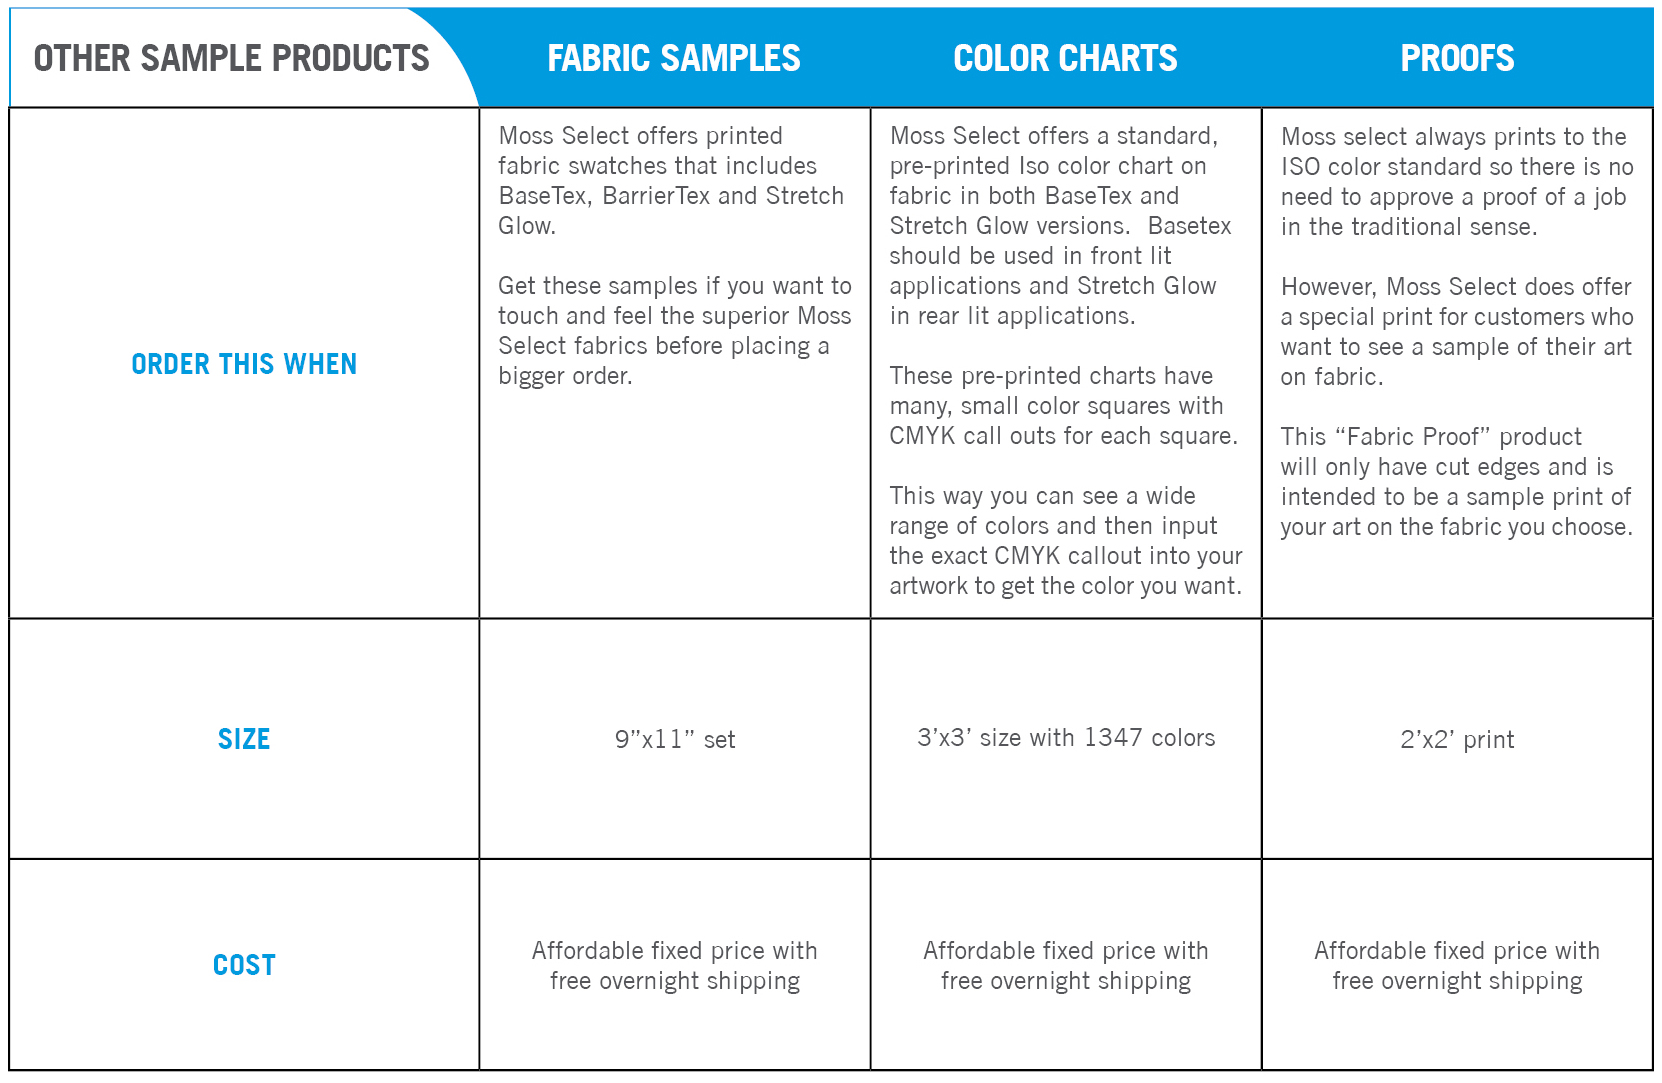 Sample Products